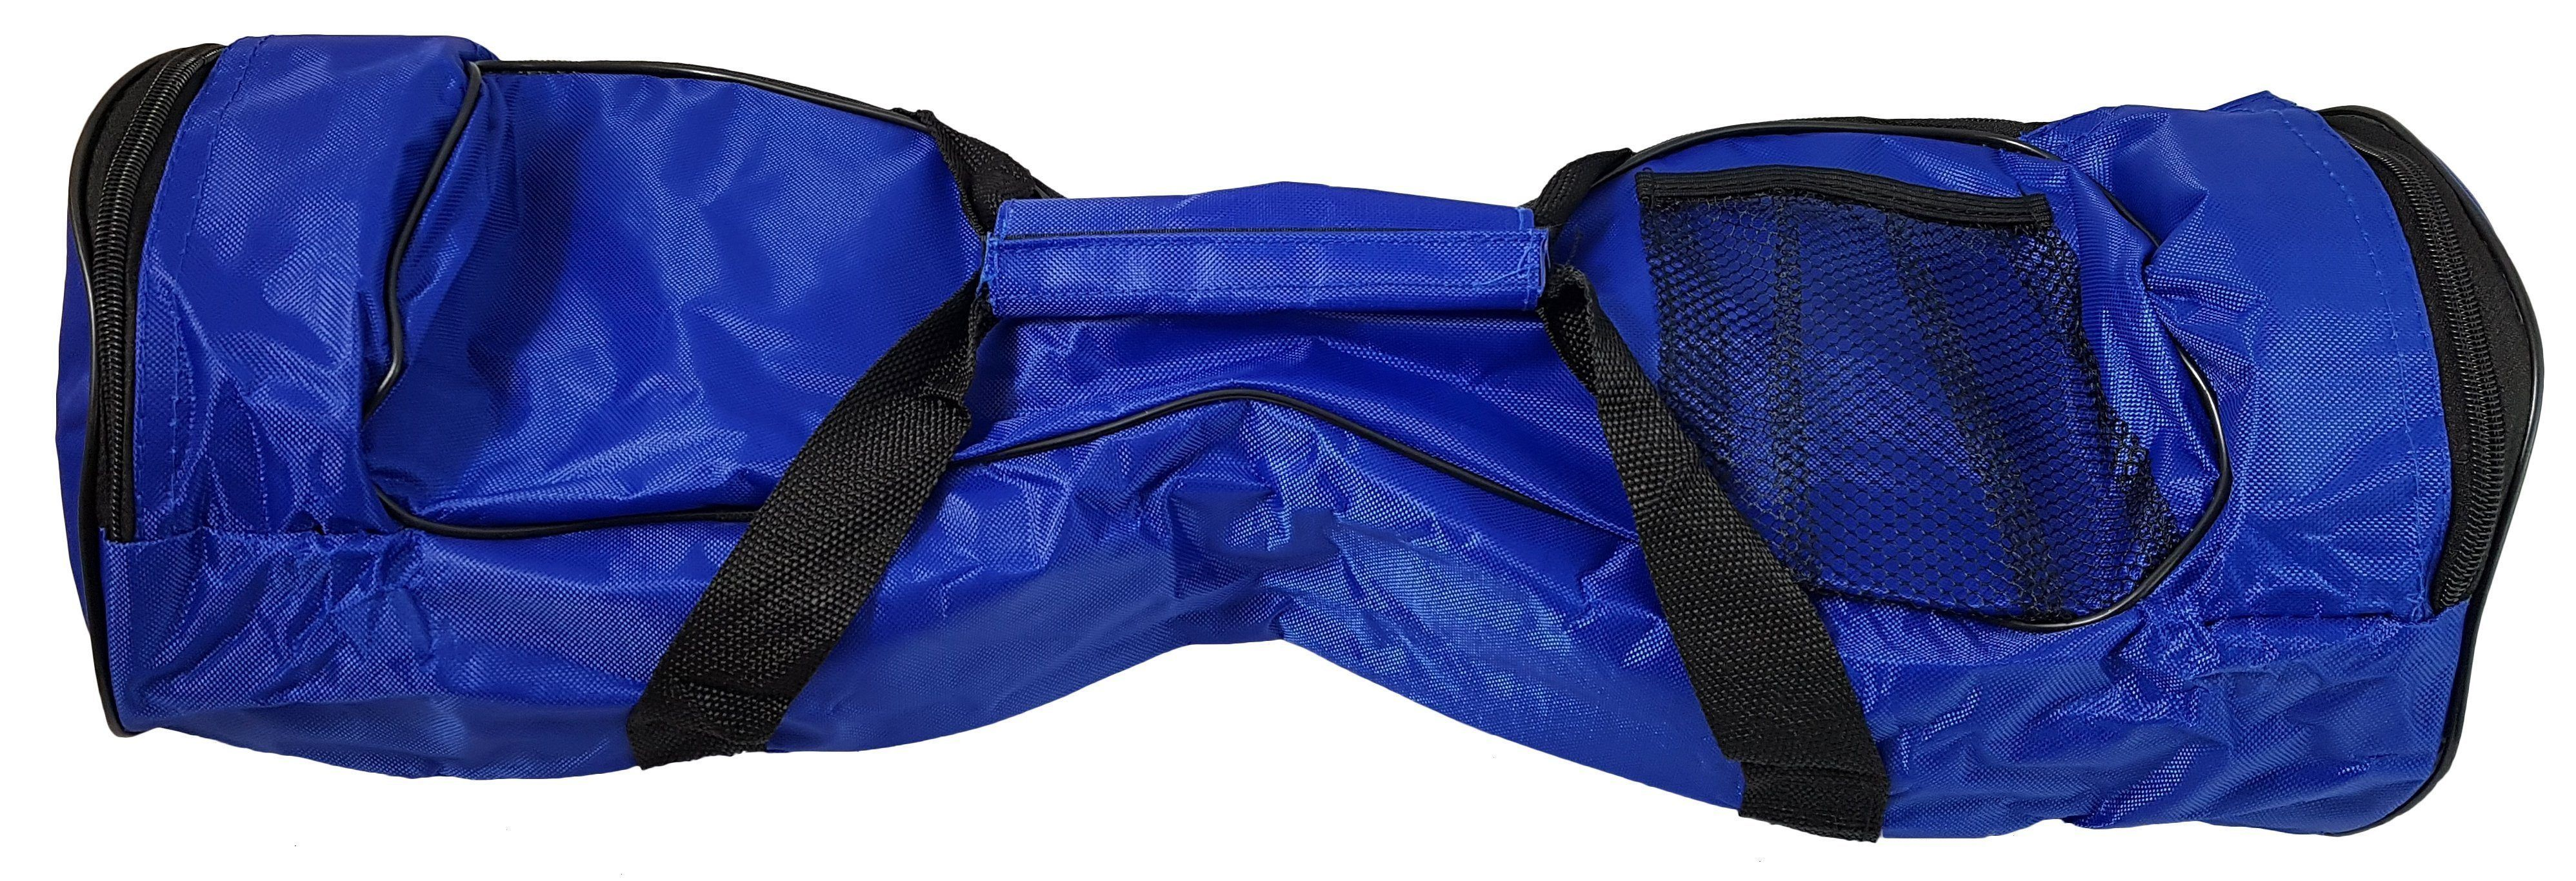 6.5 INCH WATERPROOF CARRY BAG (6.5